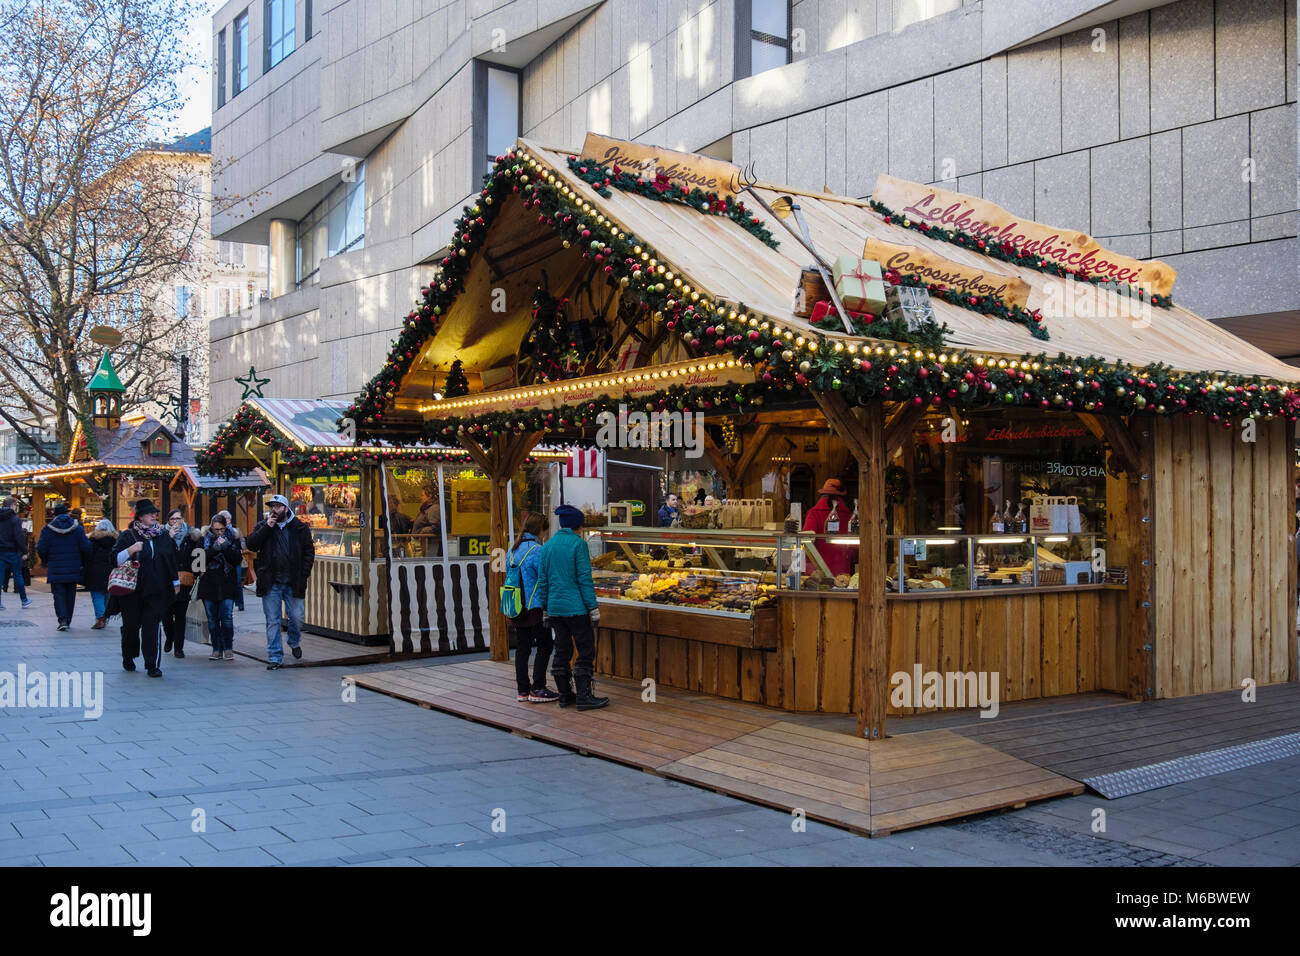 Shoppers and Christmas market food stalls in city centre pedestrianised street. Munich, Bavaria, Germany, Europe - Stock Image